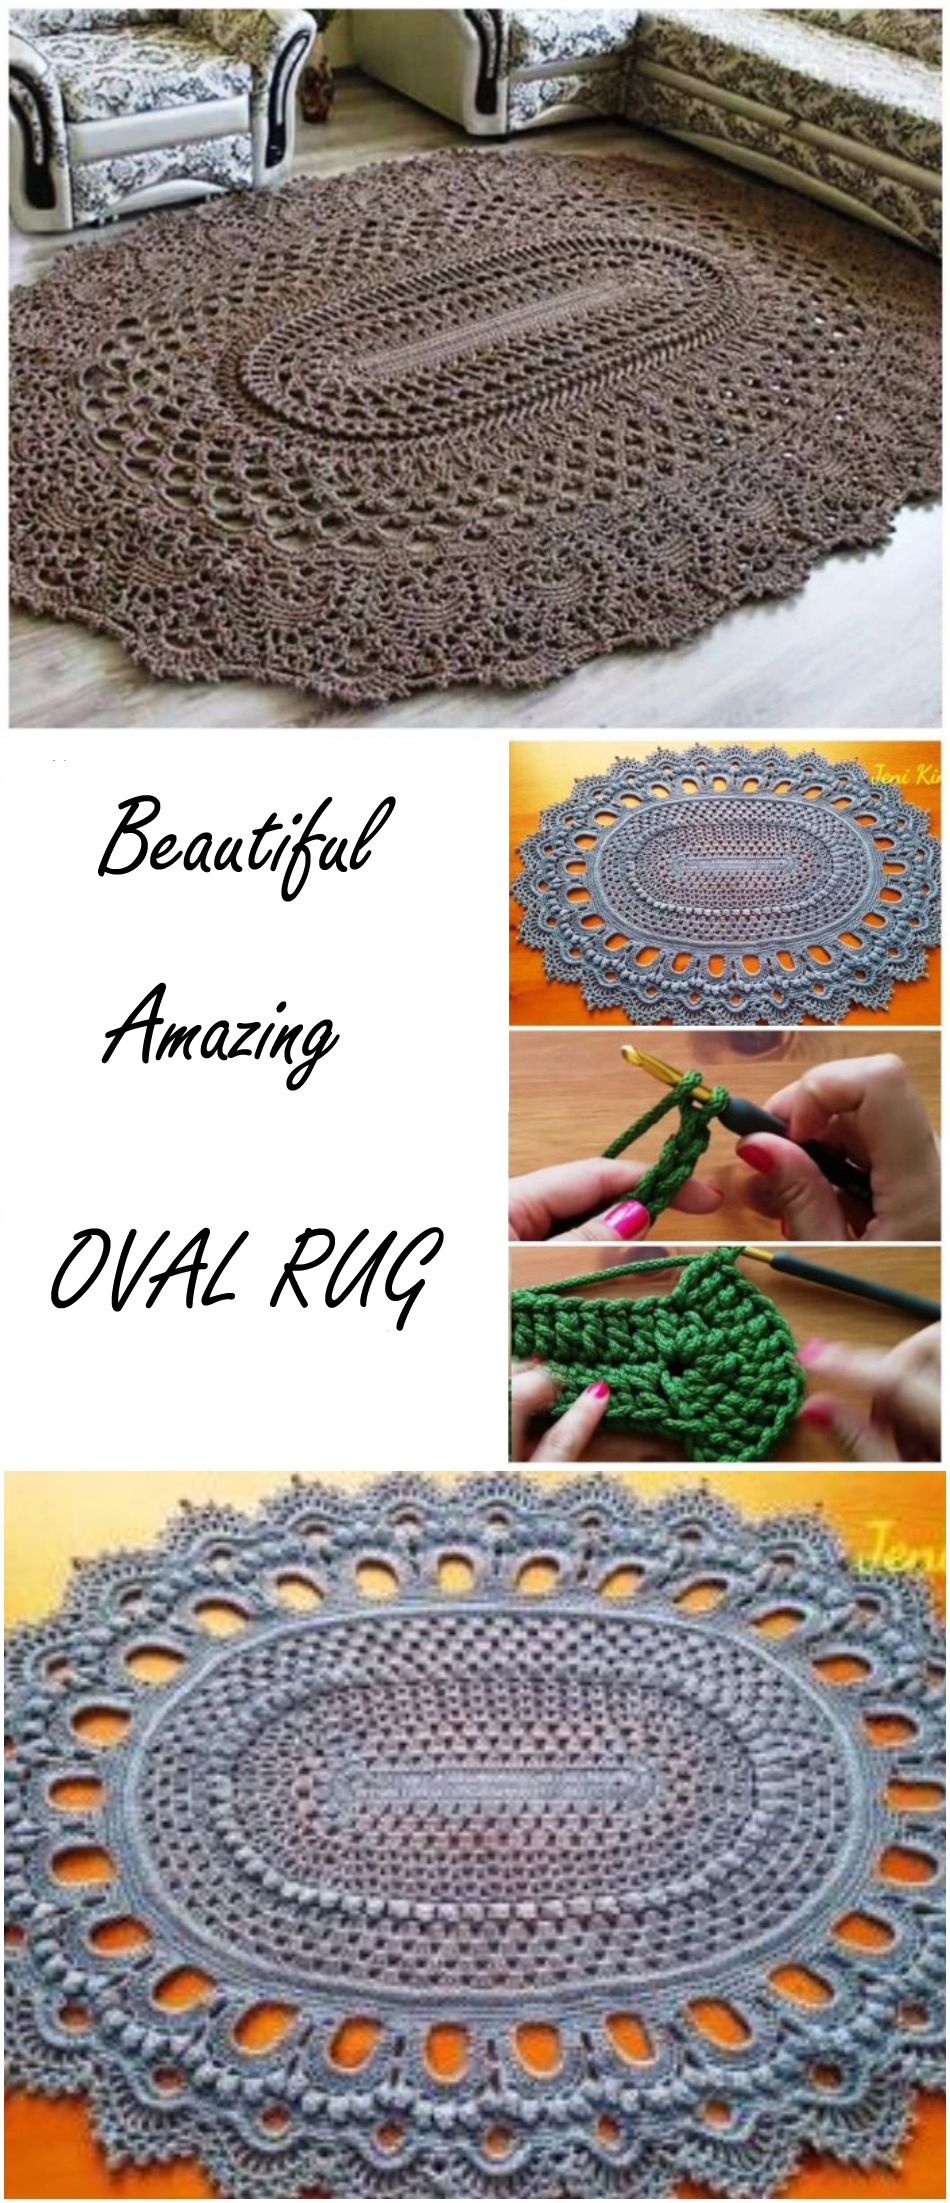 Amazing Oval Rug Tutorial | Pinterest | Oval rugs, Crochet and Patterns